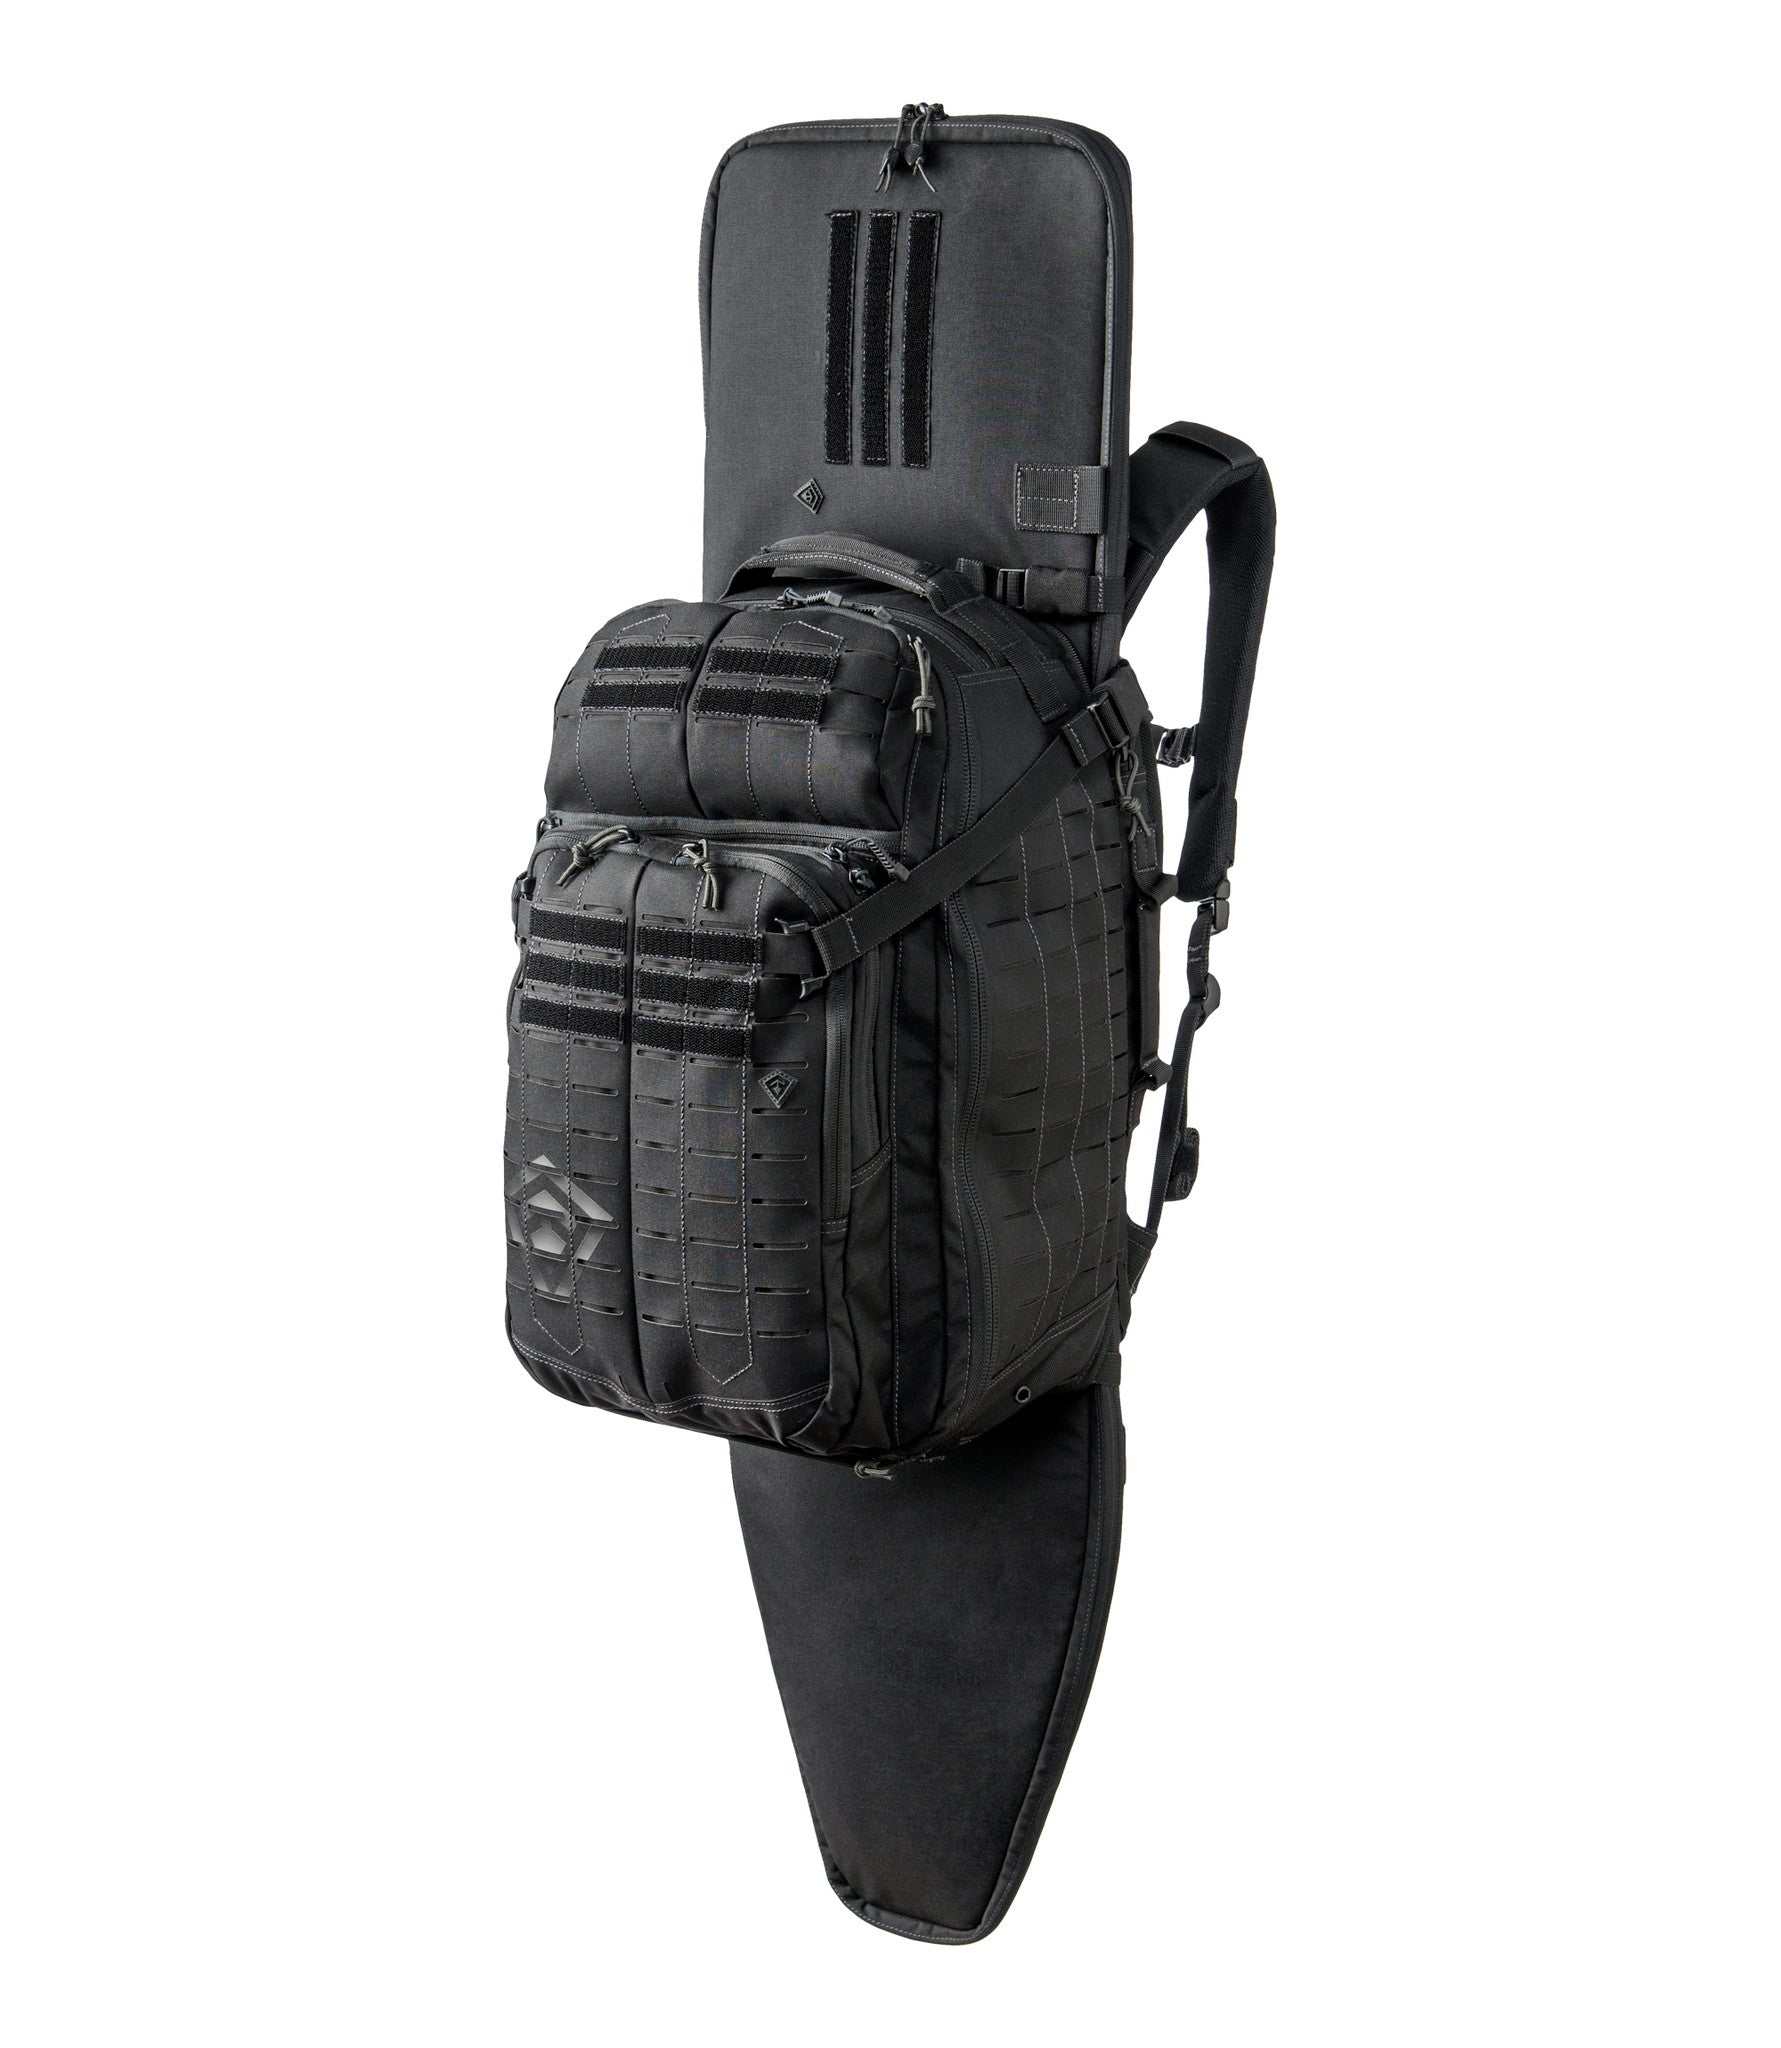 2 Pack Tactical Pouches Attachment Bag for Tactical Vest Gear Waist Backpack